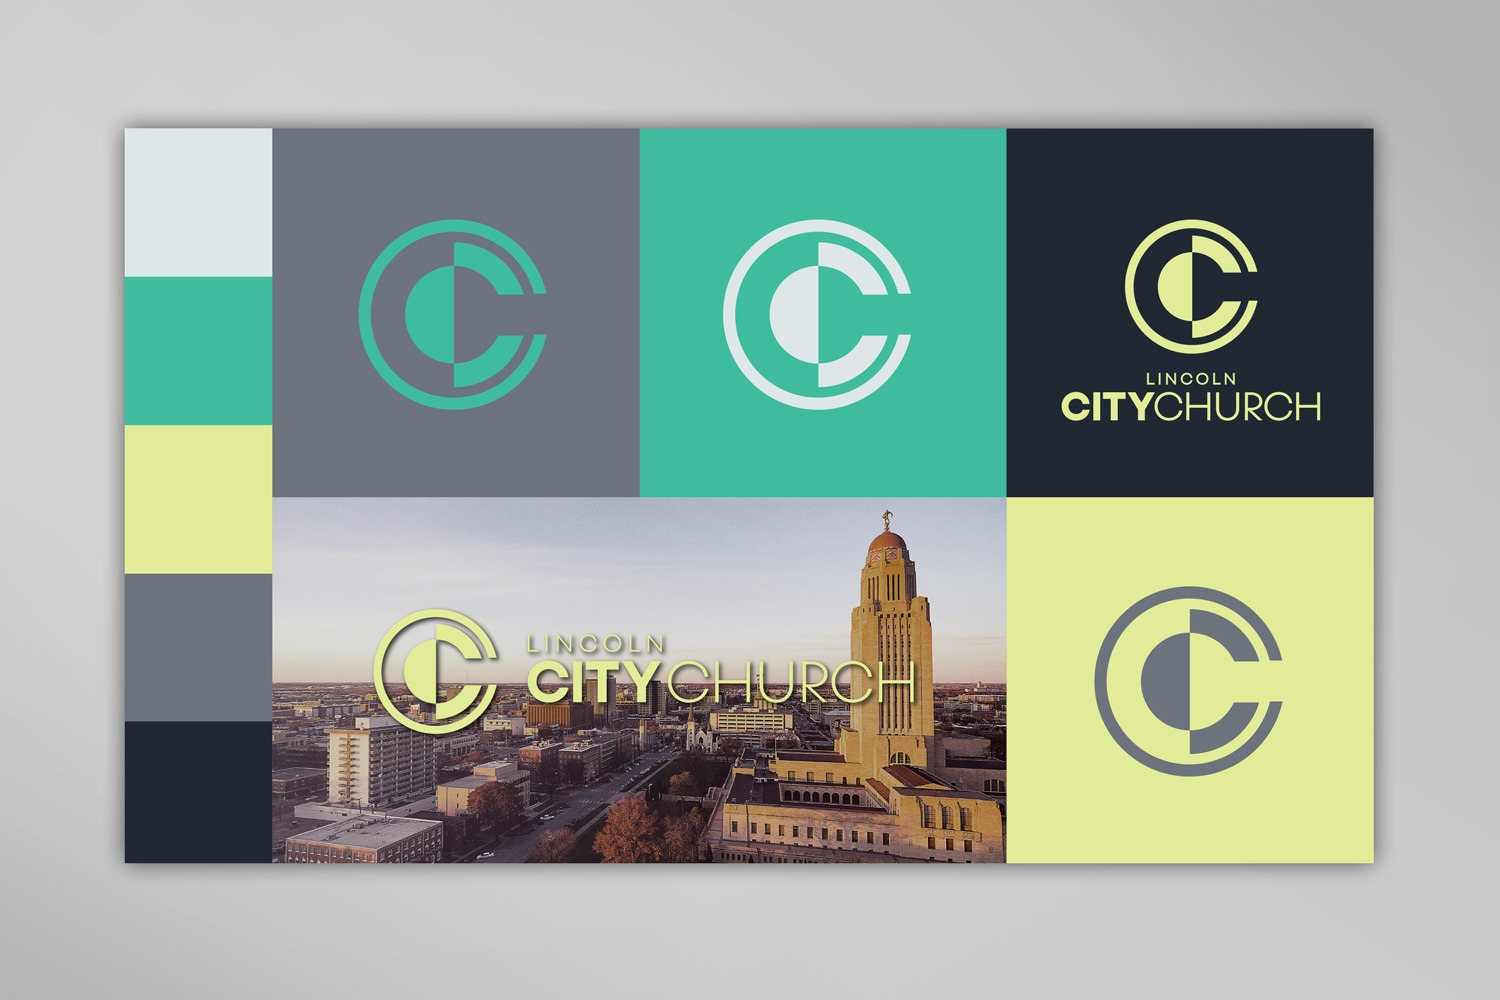 Church logo images, branding, brand identity examples & ideas